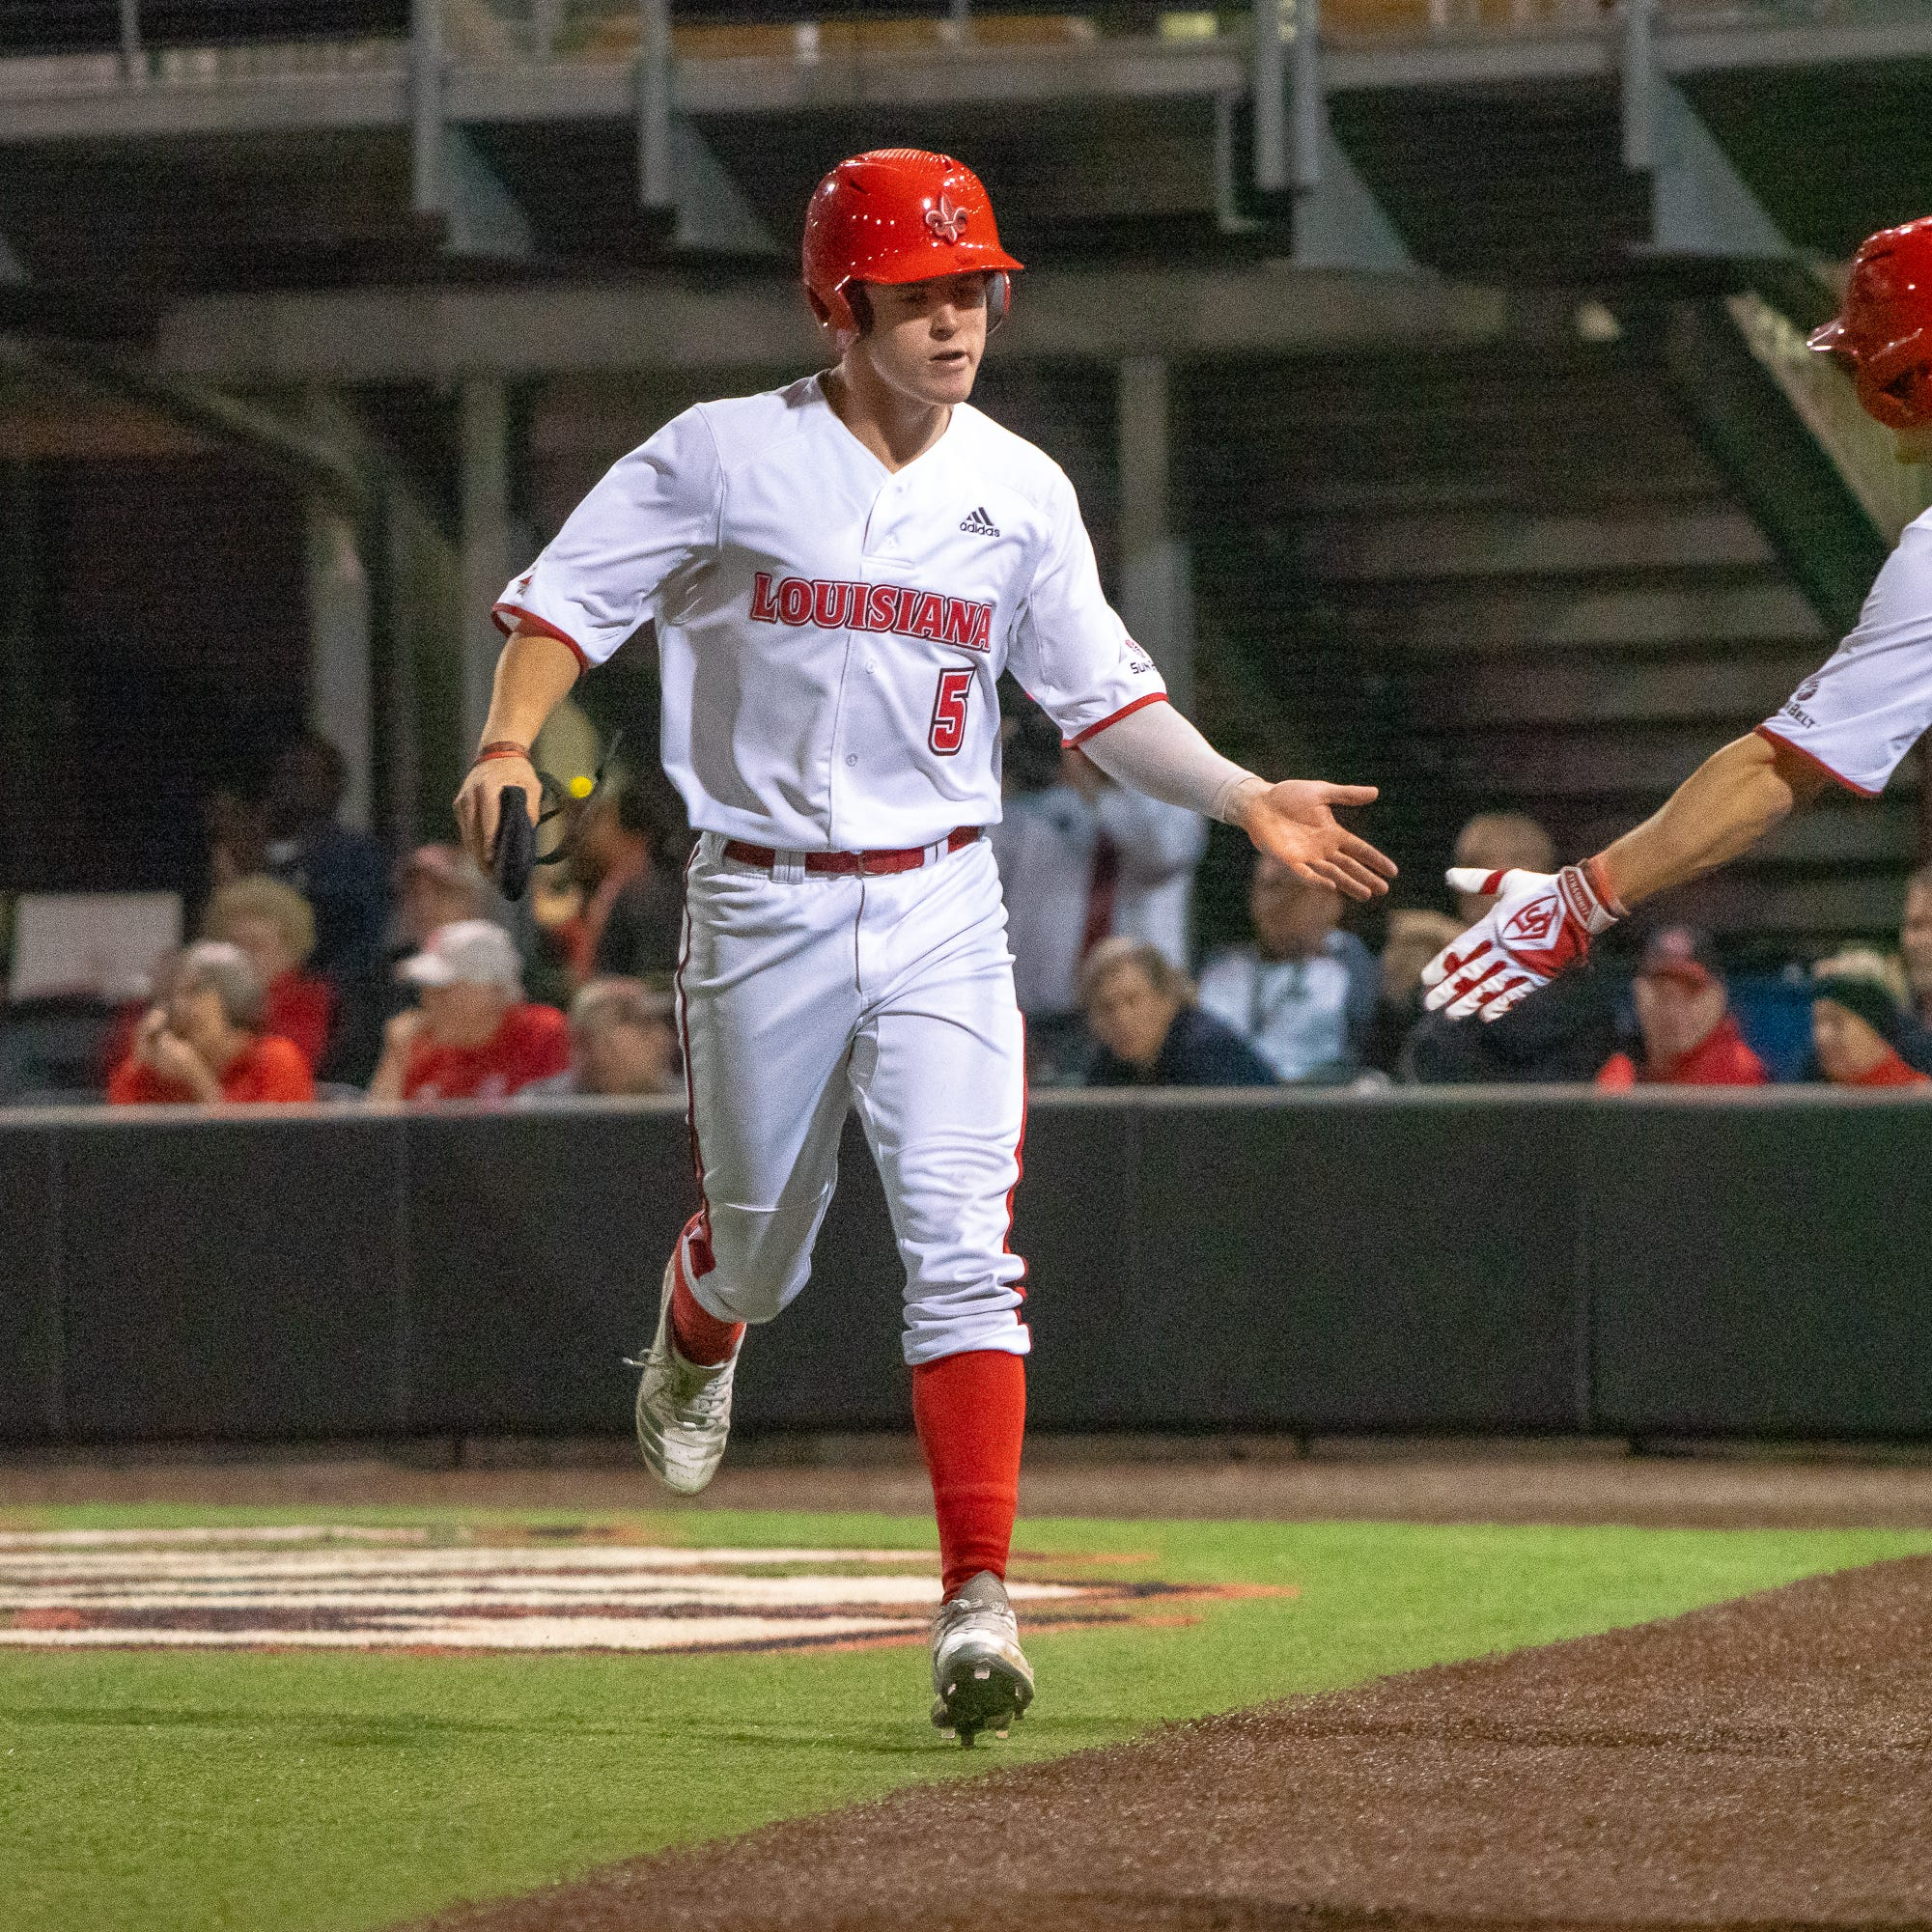 Cantrelle becomes fourth Ragin' Cajun to hit for the cycle